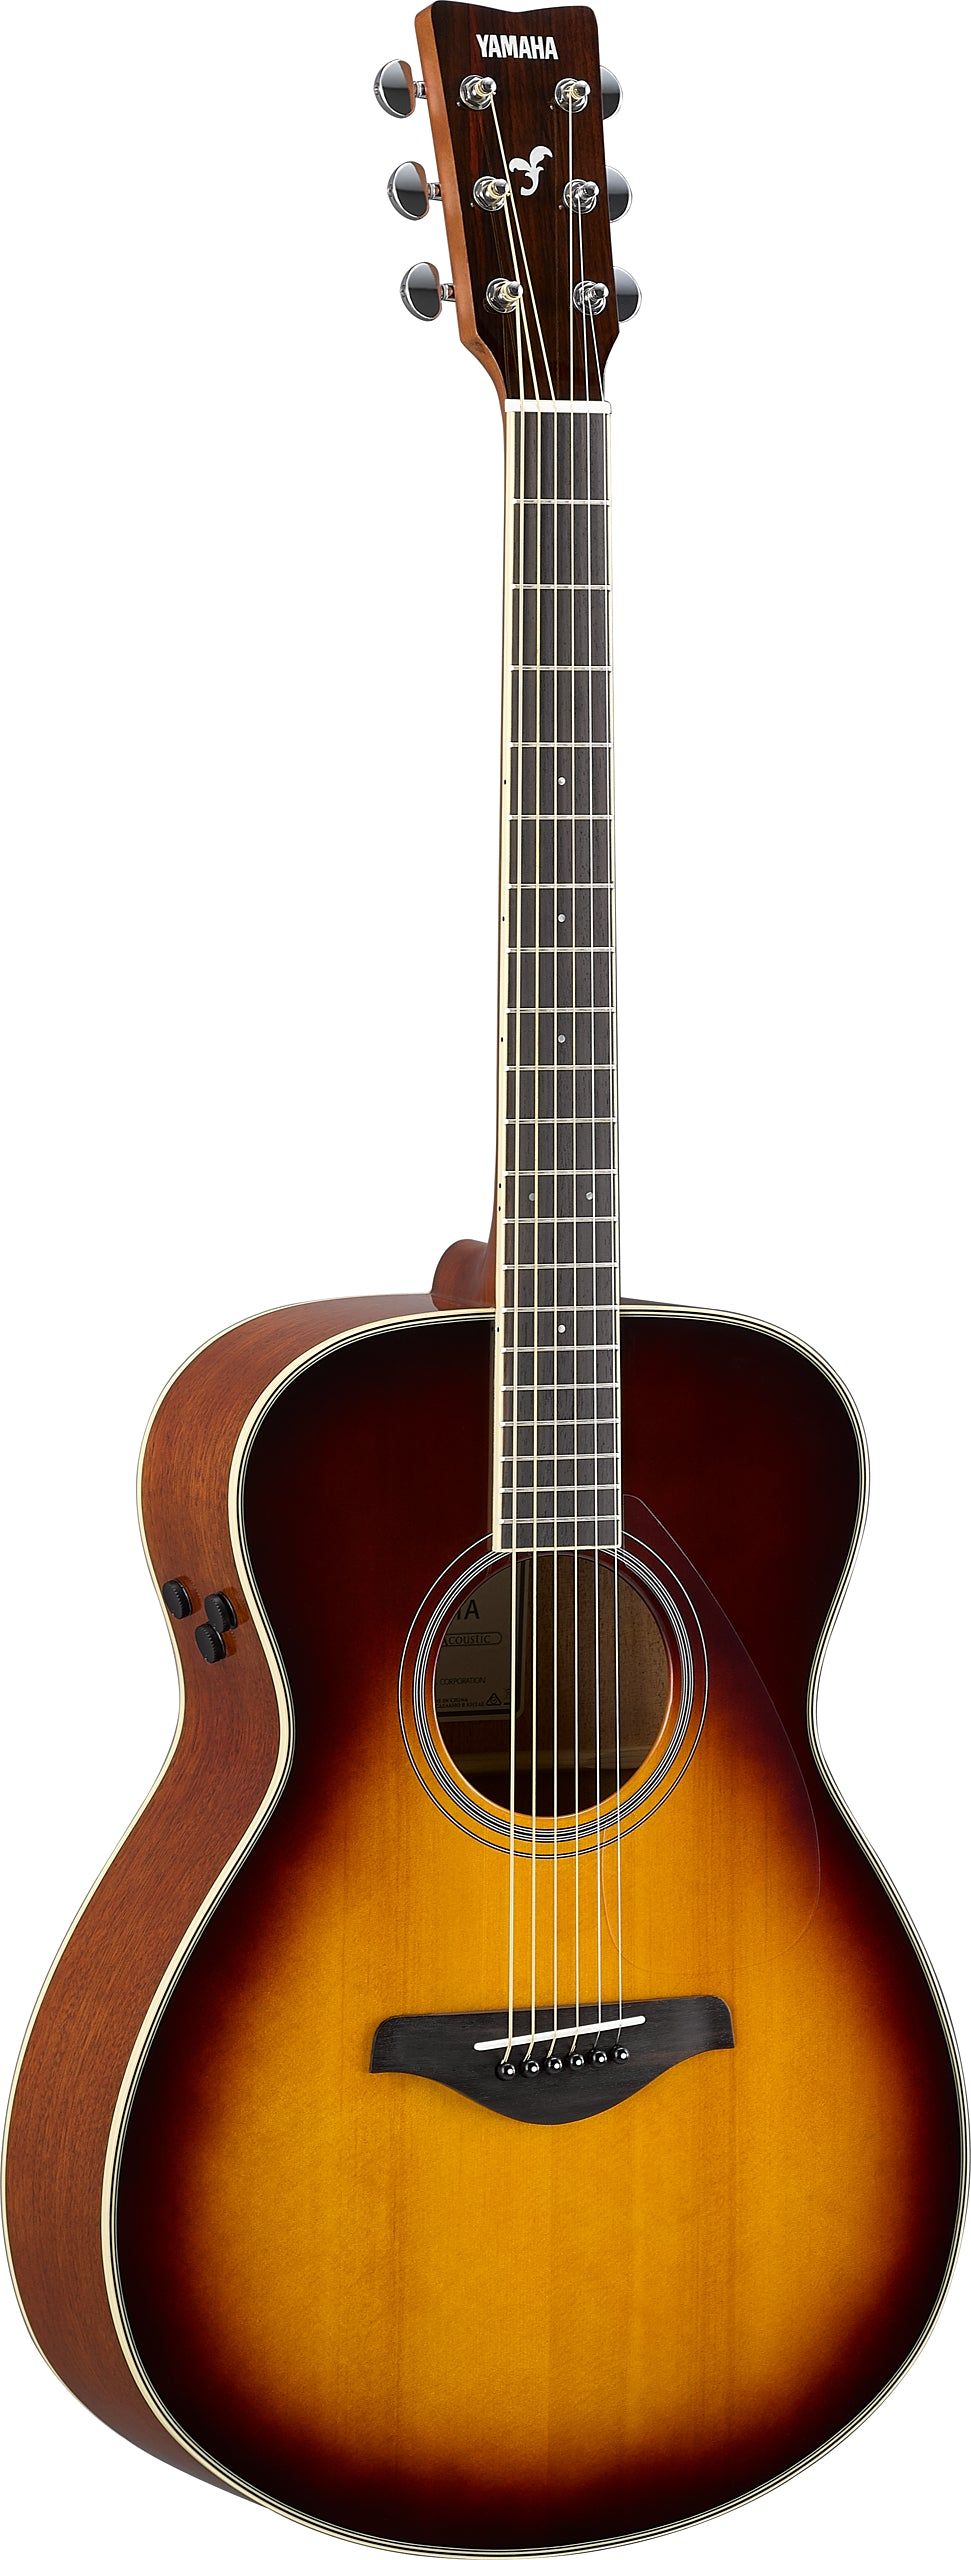 Yamaha FSTA BS TransAcoustic Guitars - Brown Sunburst